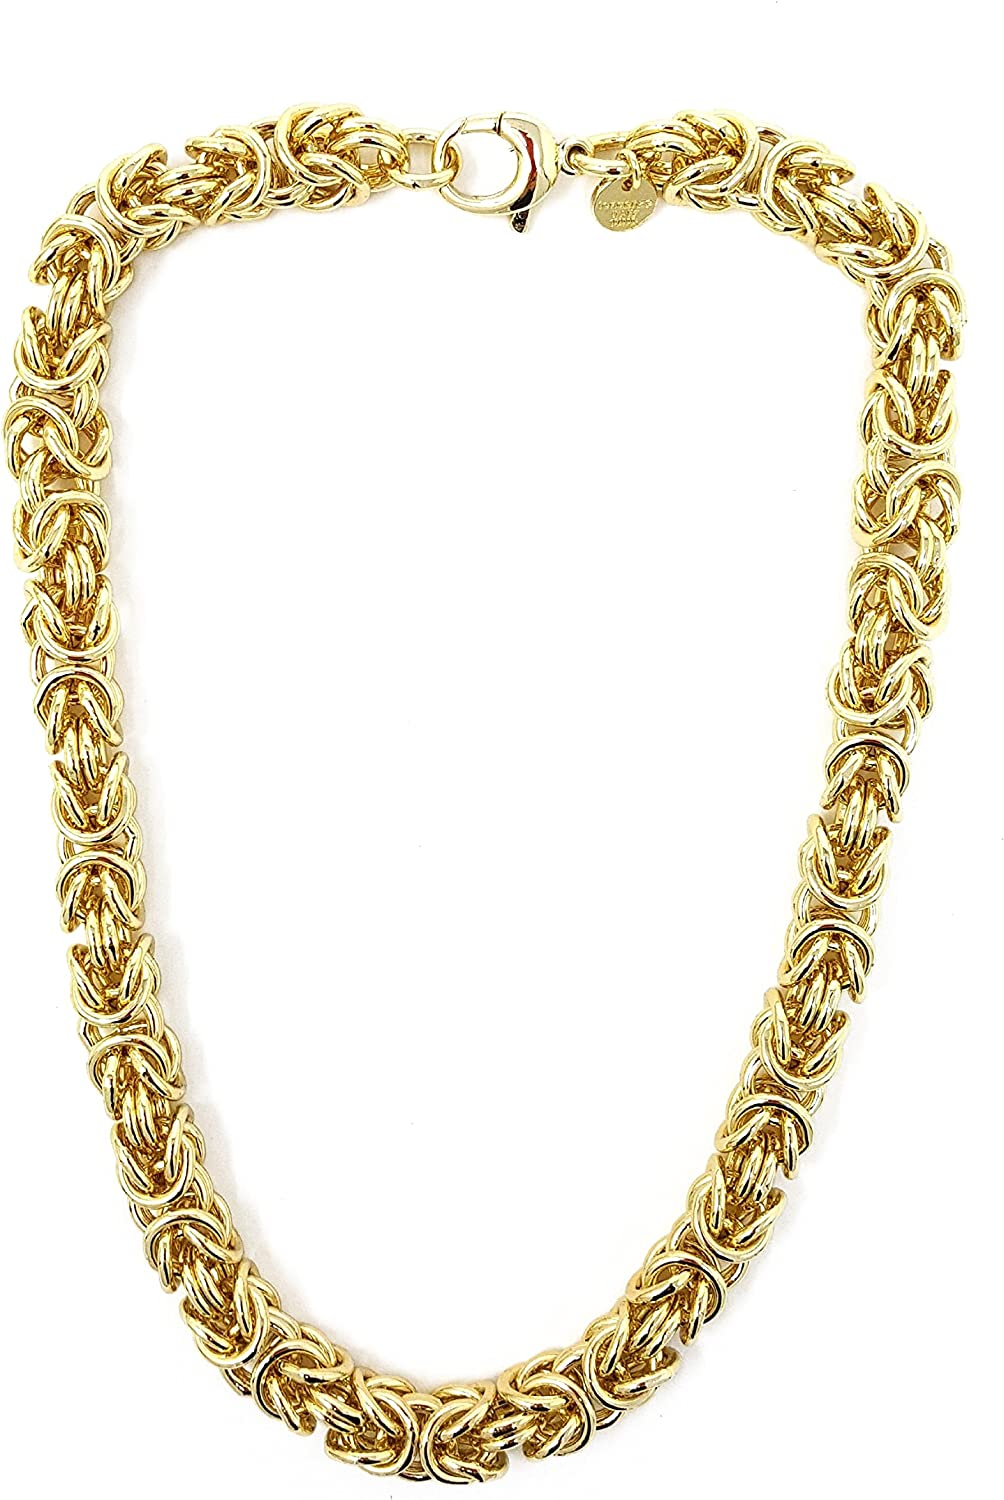 King/'s Chain  King/'s Bracelet Rolled Gold Rose Gold Doubl/é Necklace Pendant Chain Anklet Gold Chain Mens Chain Womens Gift Jewellery from Tendenze Factory Italy